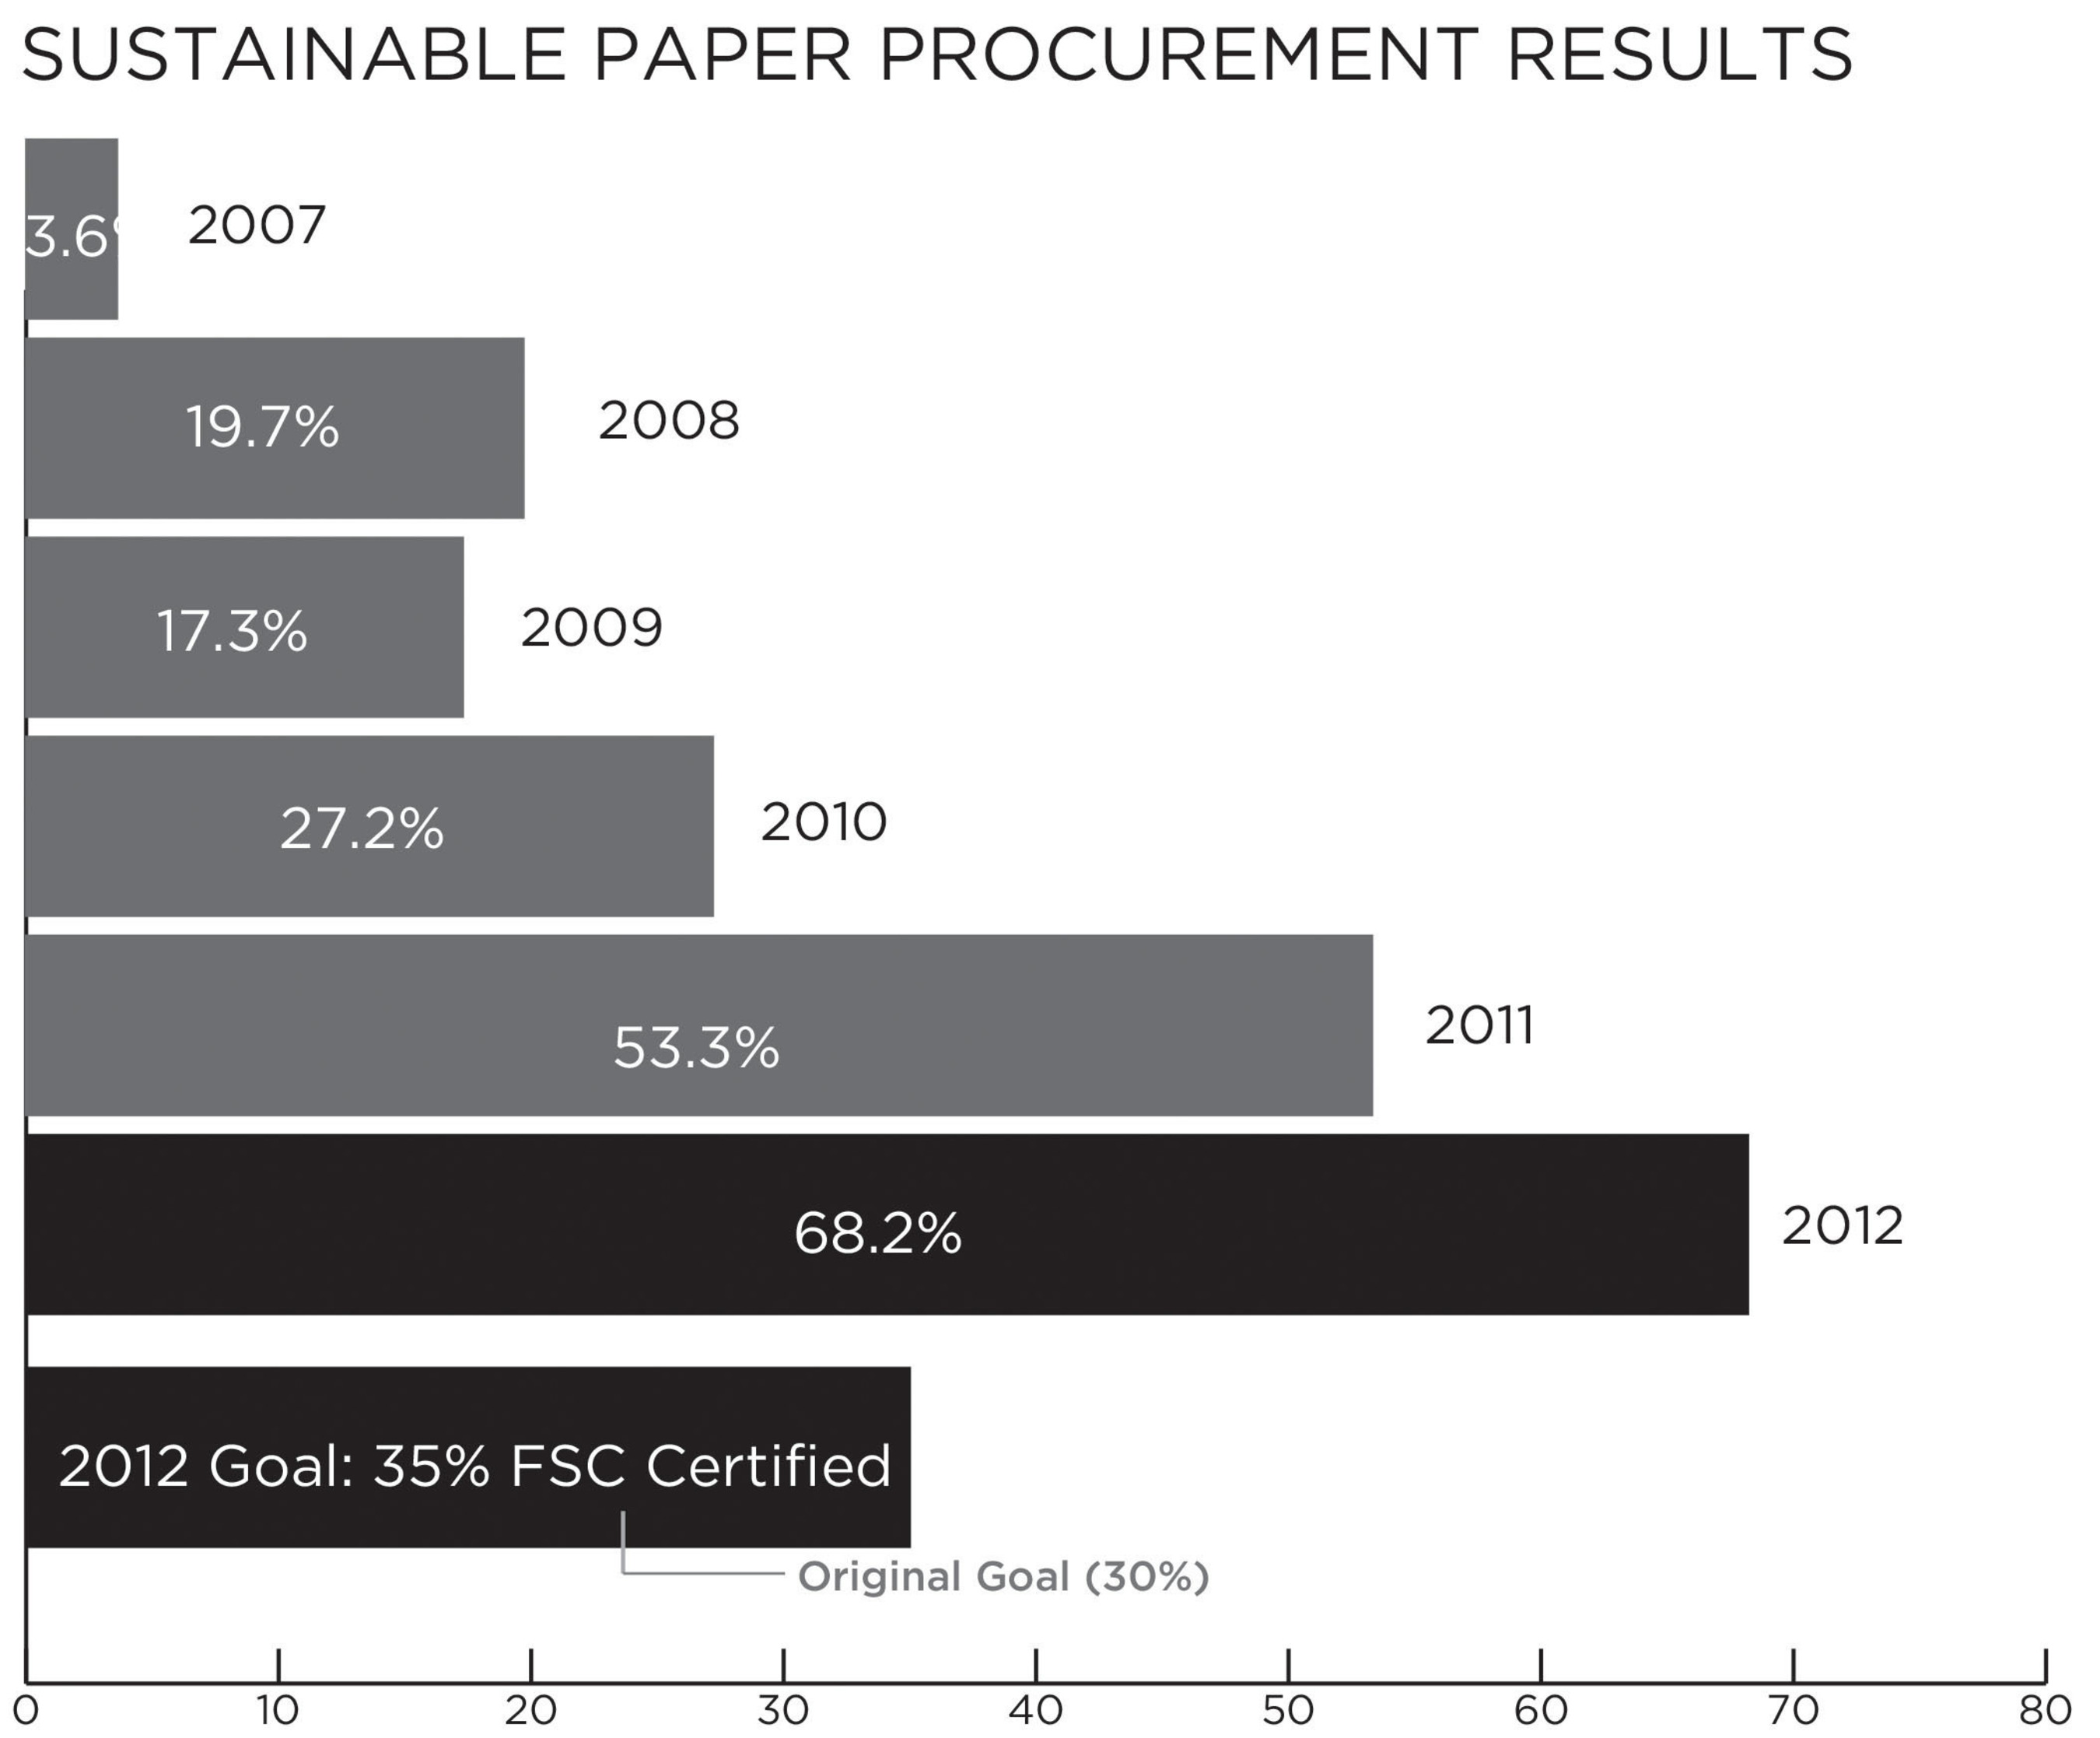 Scholastic Among Leaders in Publishing Industry for Responsible Paper Procurement with 68.2% FSC-Certified ...